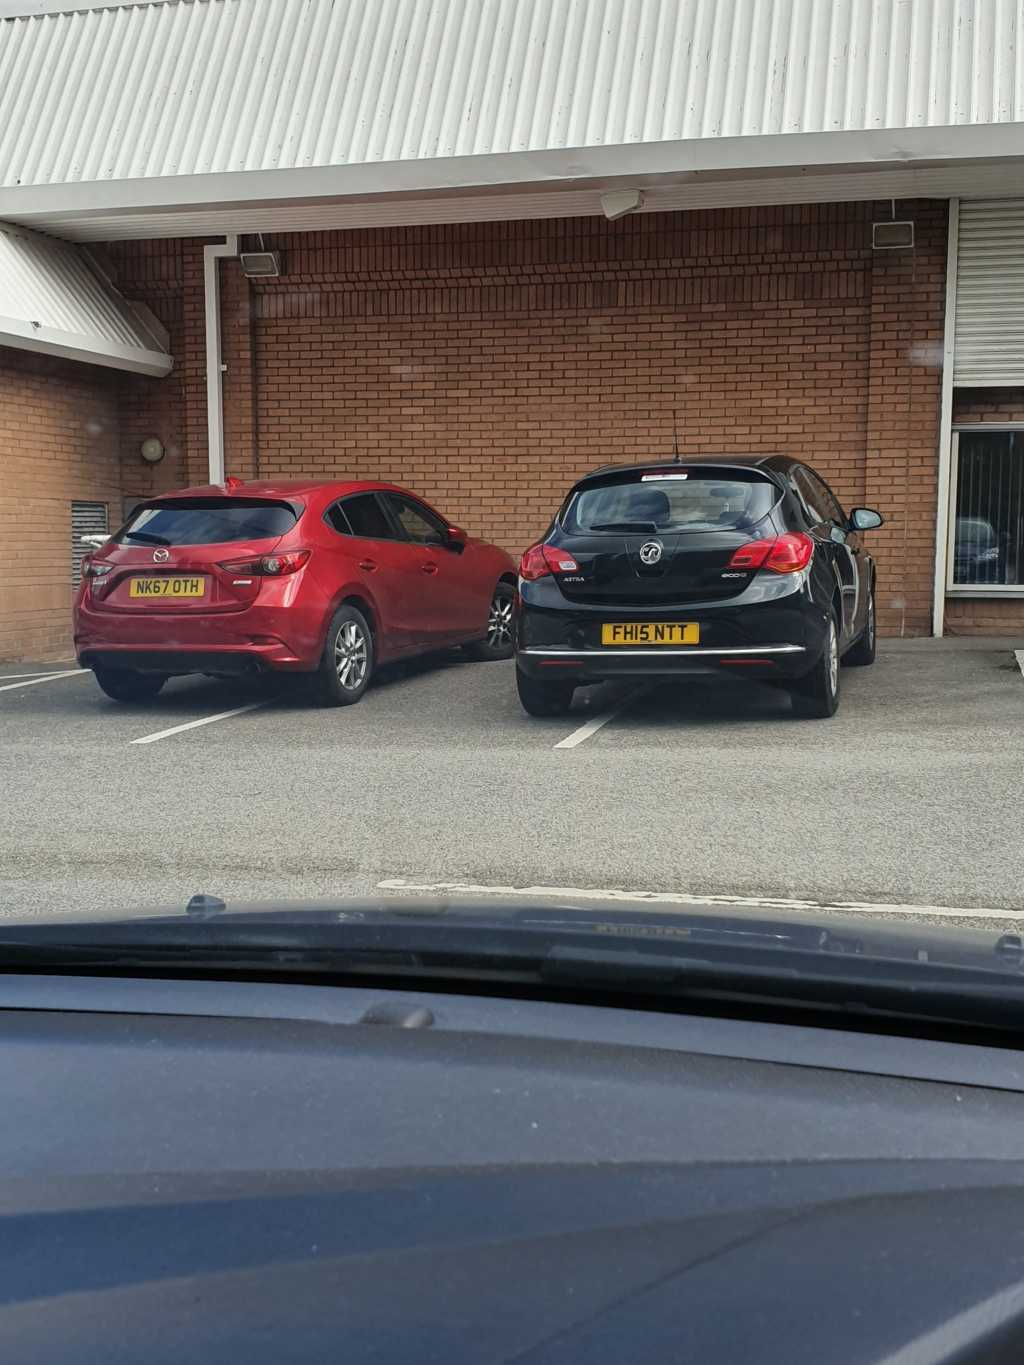 NK67 OTH & FH15 NTT is an Inconsiderate Parker